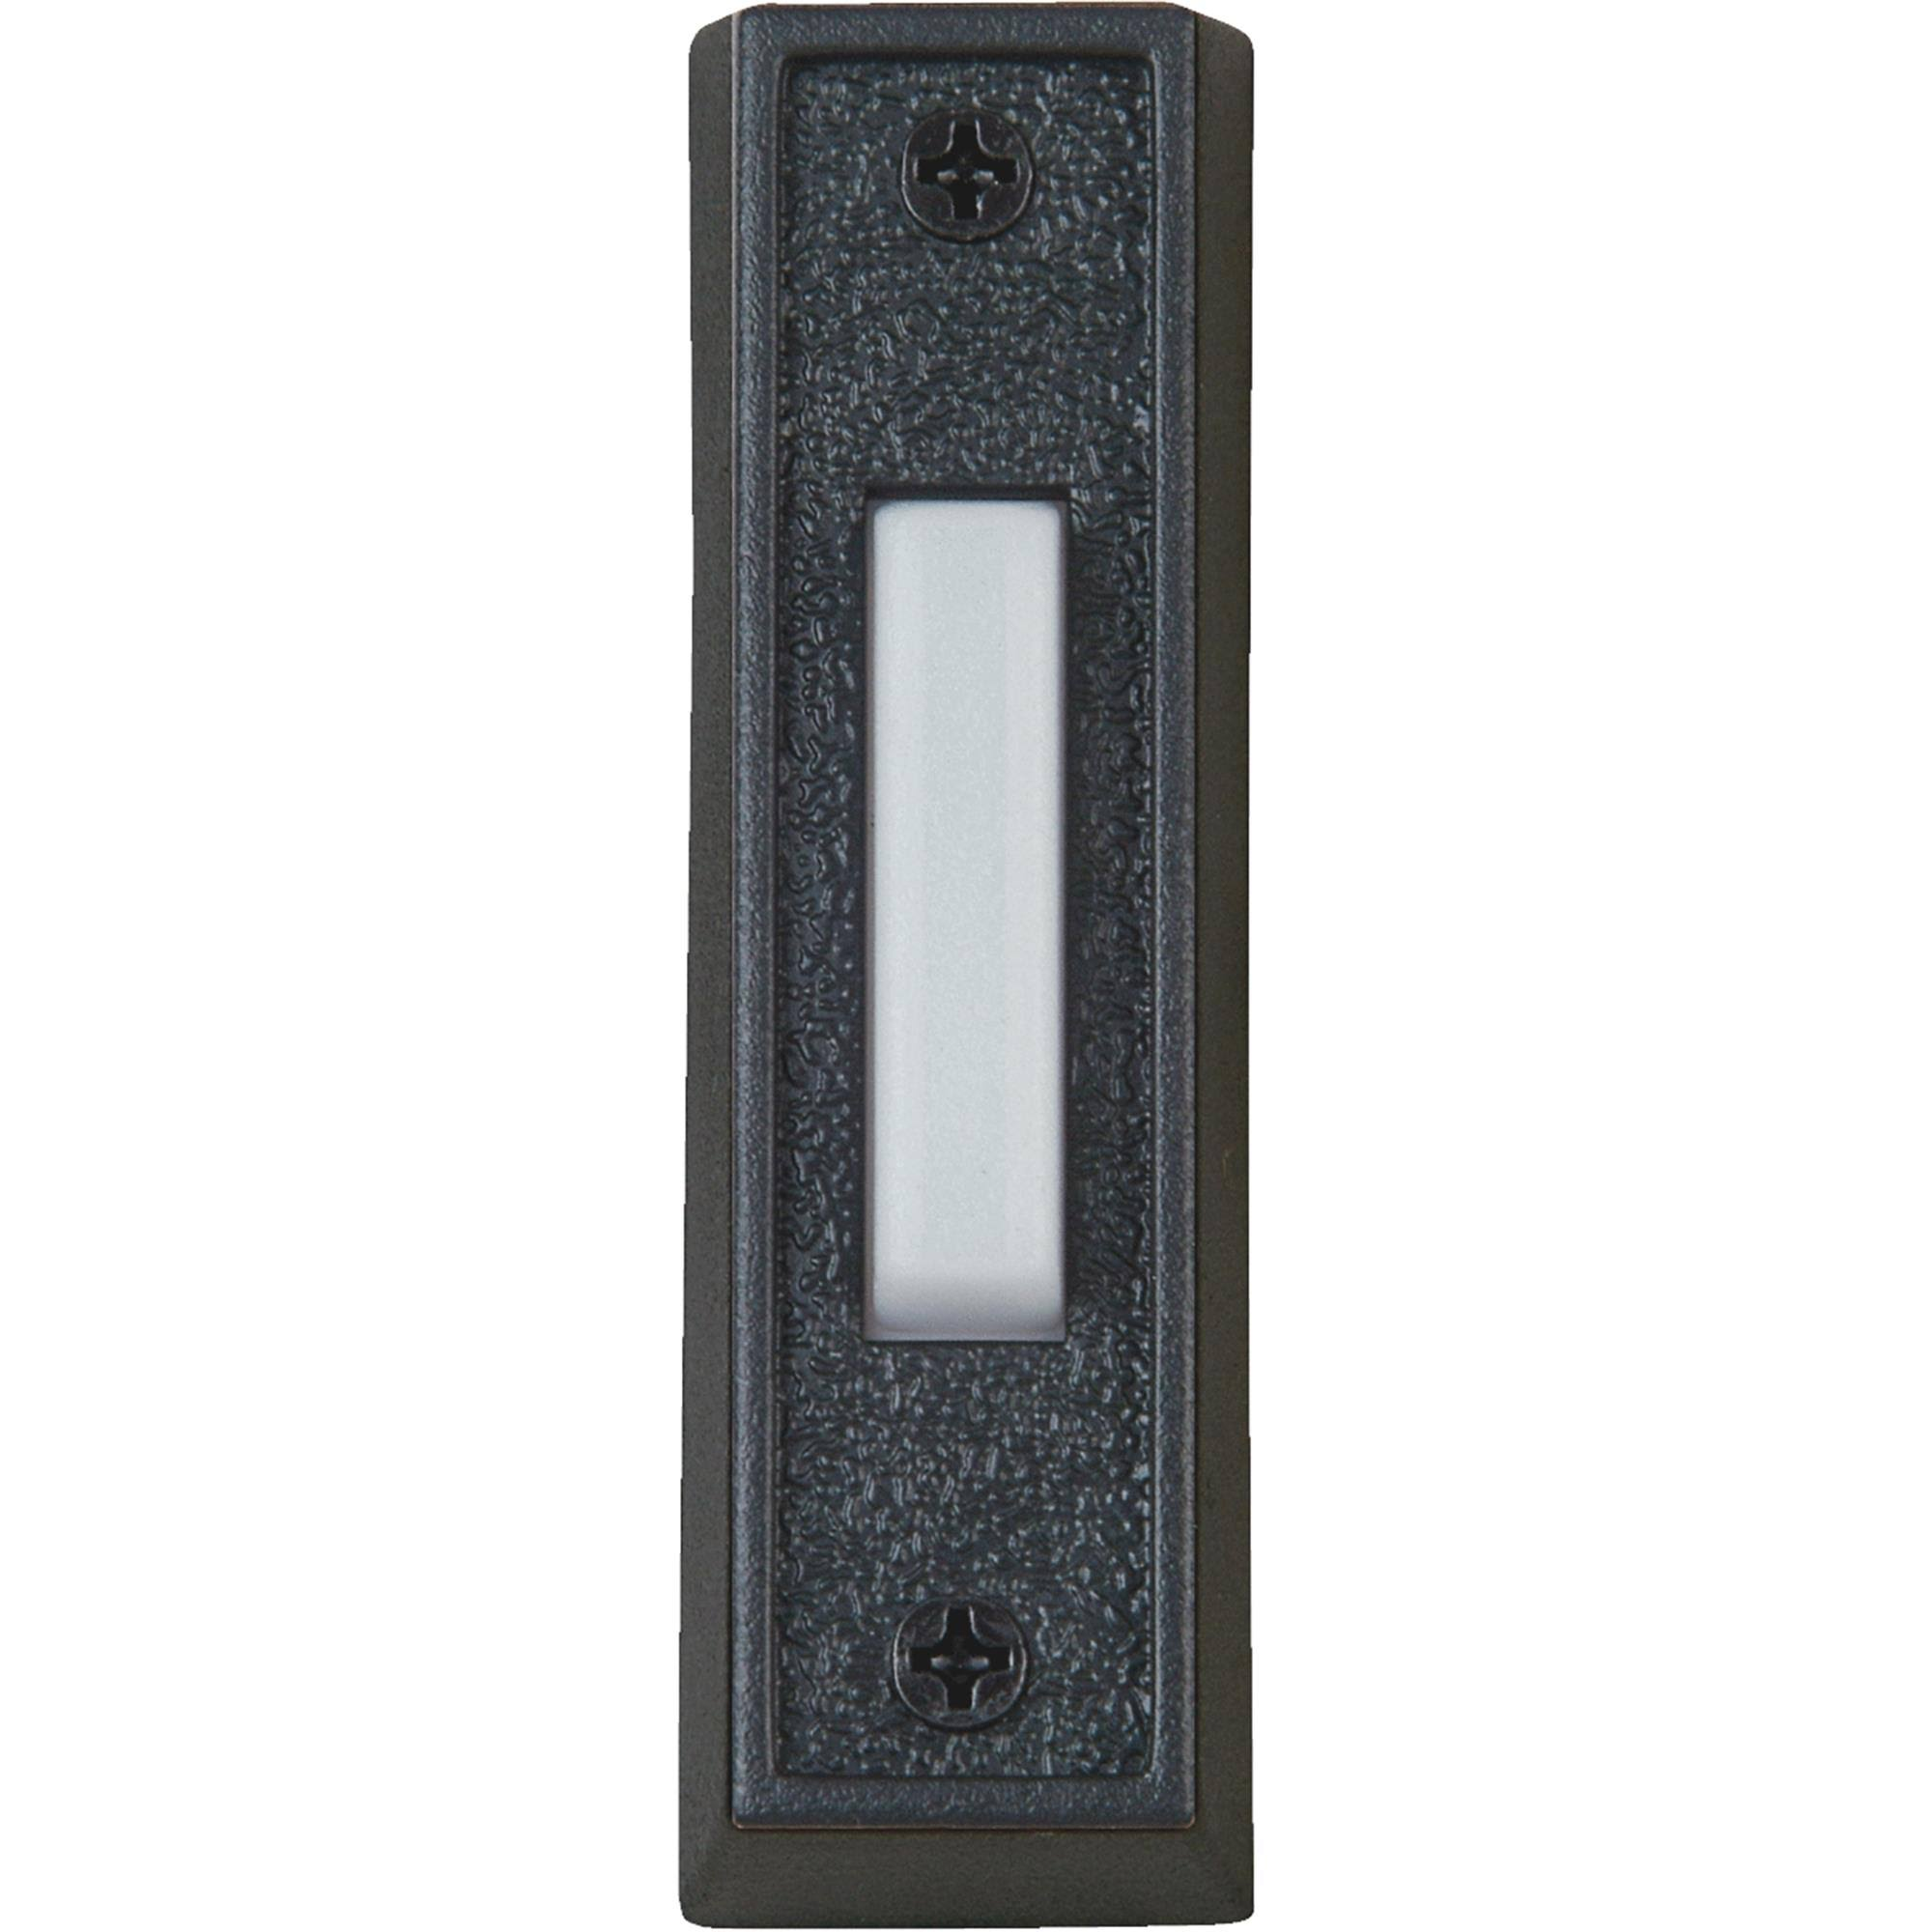 IQ America Wired Lighted Doorbell Push Button - Black and White